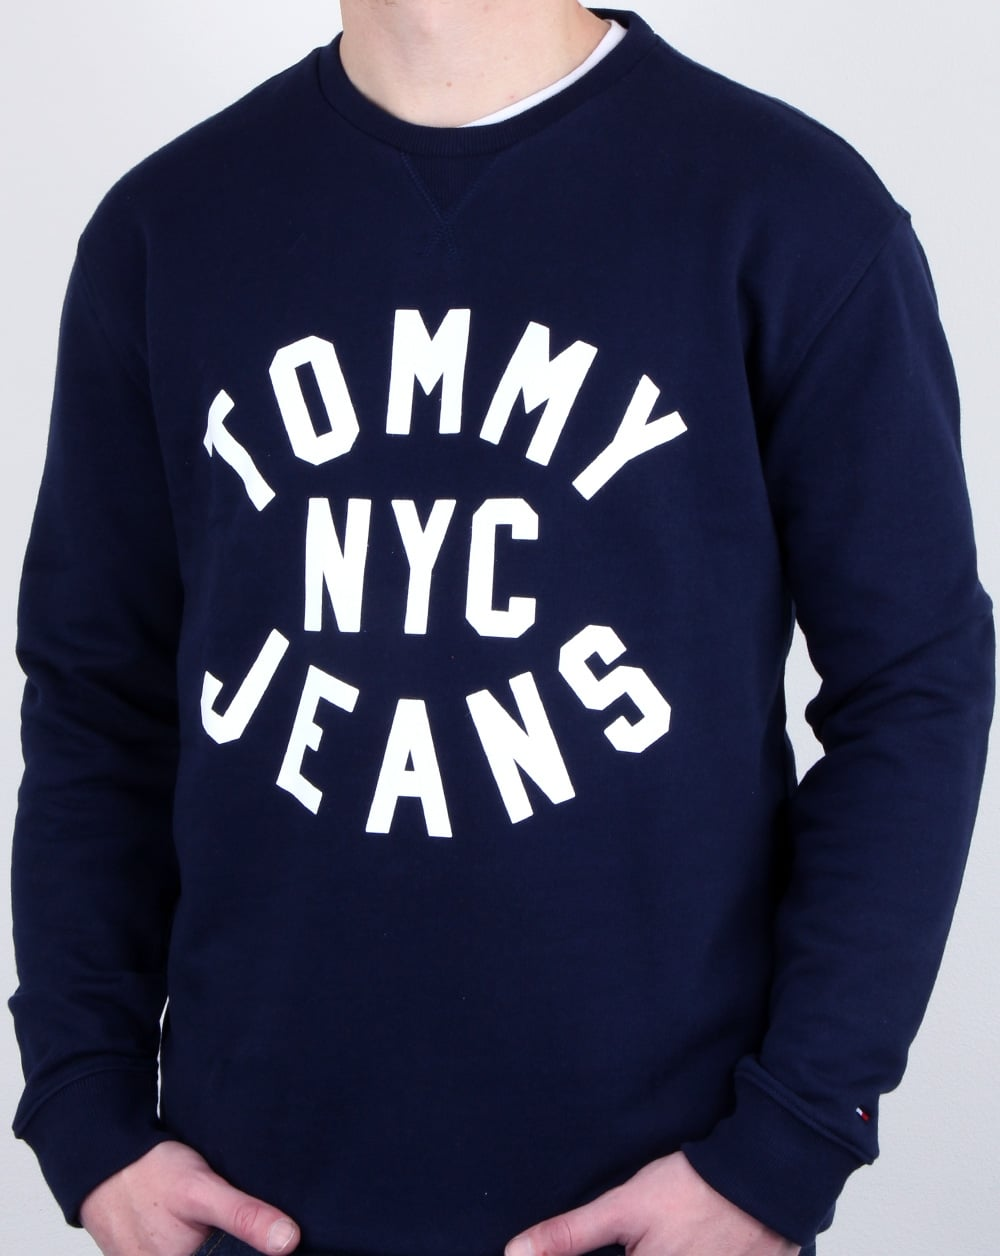 479653bb Tommy Hilfiger NYC Logo Sweatshirt Navy, Mens, Cotton, Crew Neck